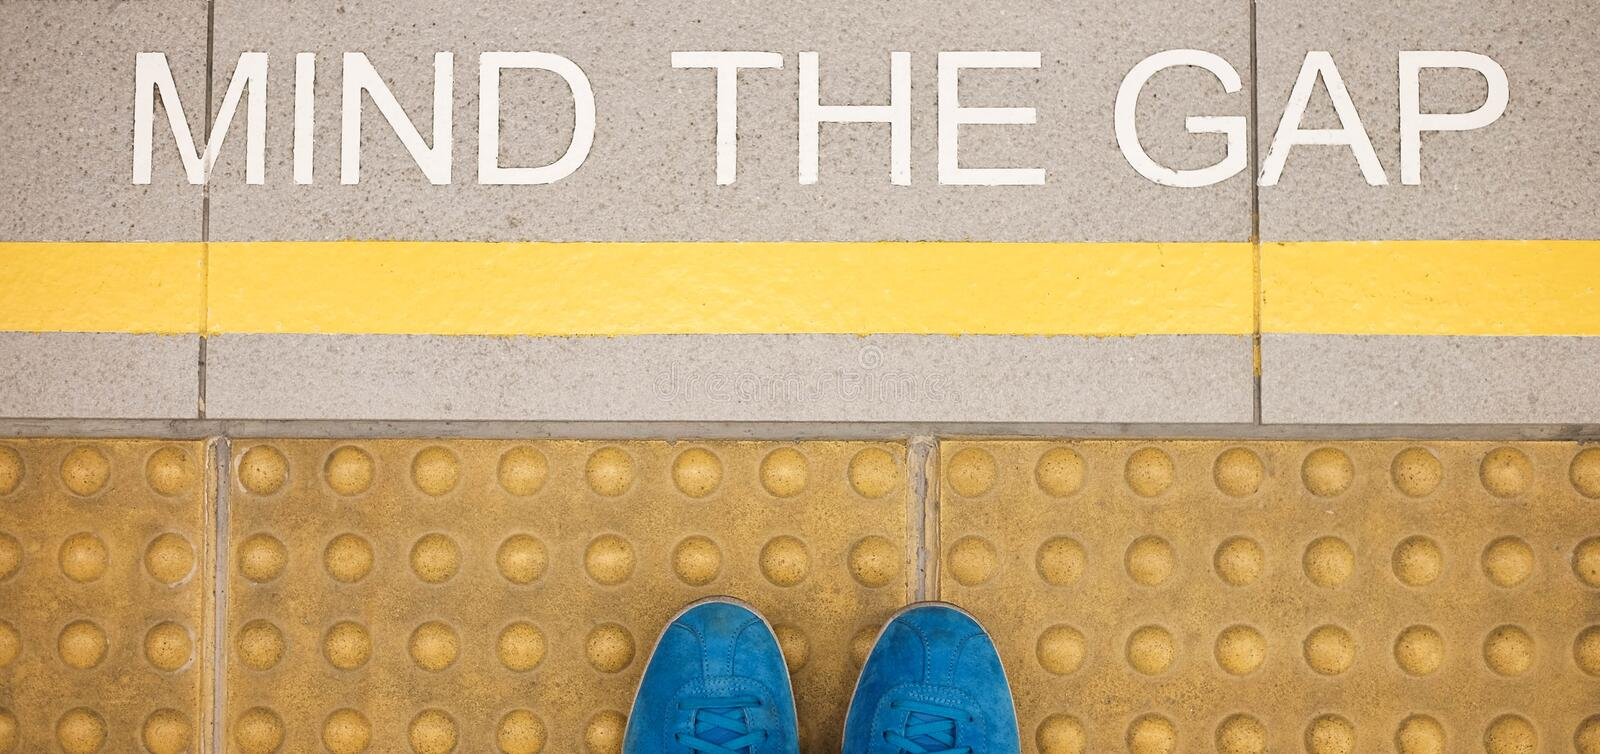 The sign Mind the gap painted on train station's platform edge royalty free stock photos